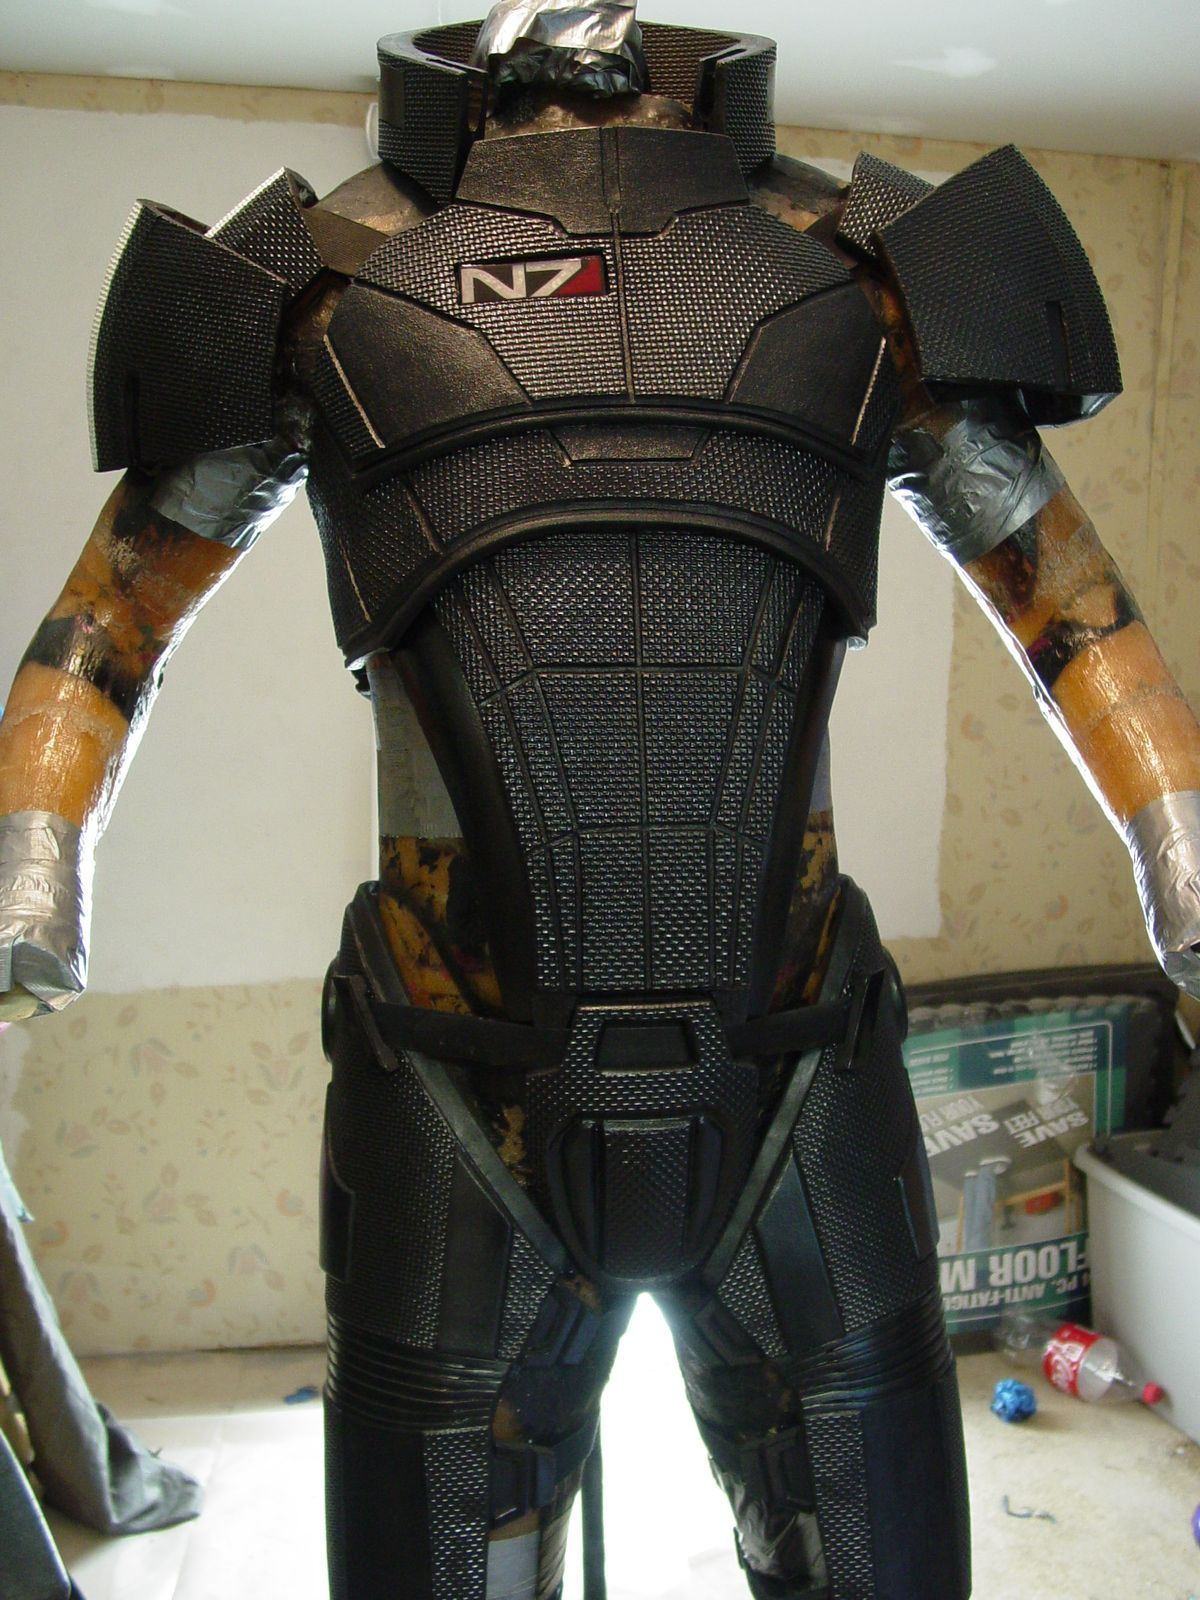 N7 armor worn by shepard in me3 retails for 650 costuming armor n7 armor worn by shepard in me3 retails for 650 maxwellsz